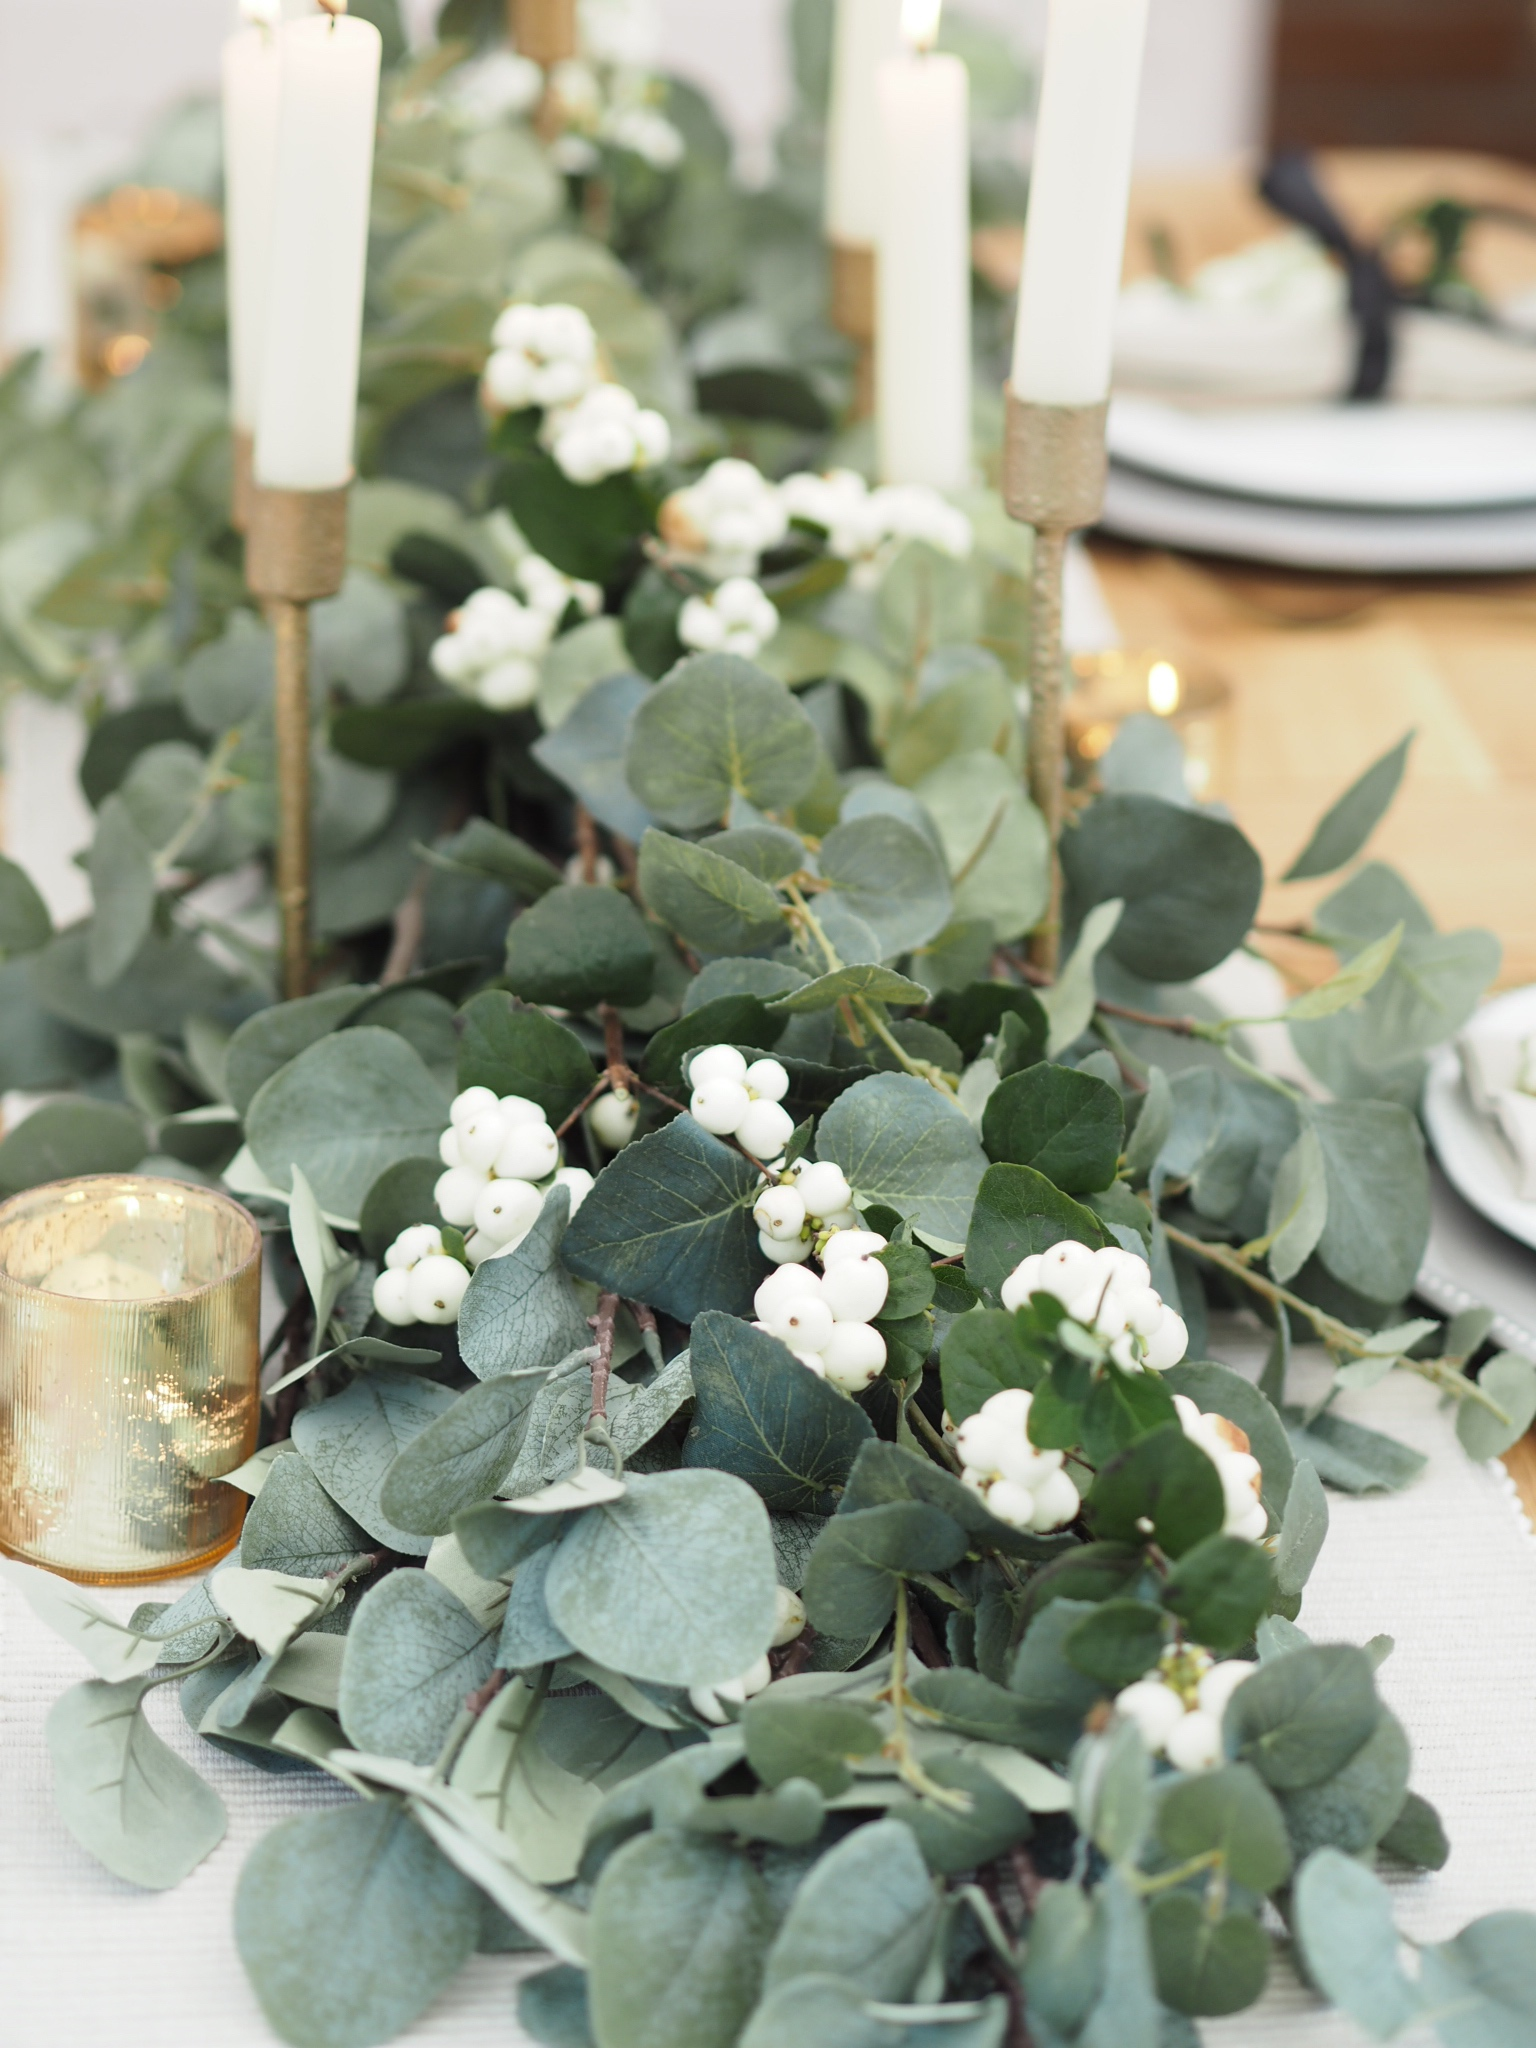 Eucalyptus festive table runner